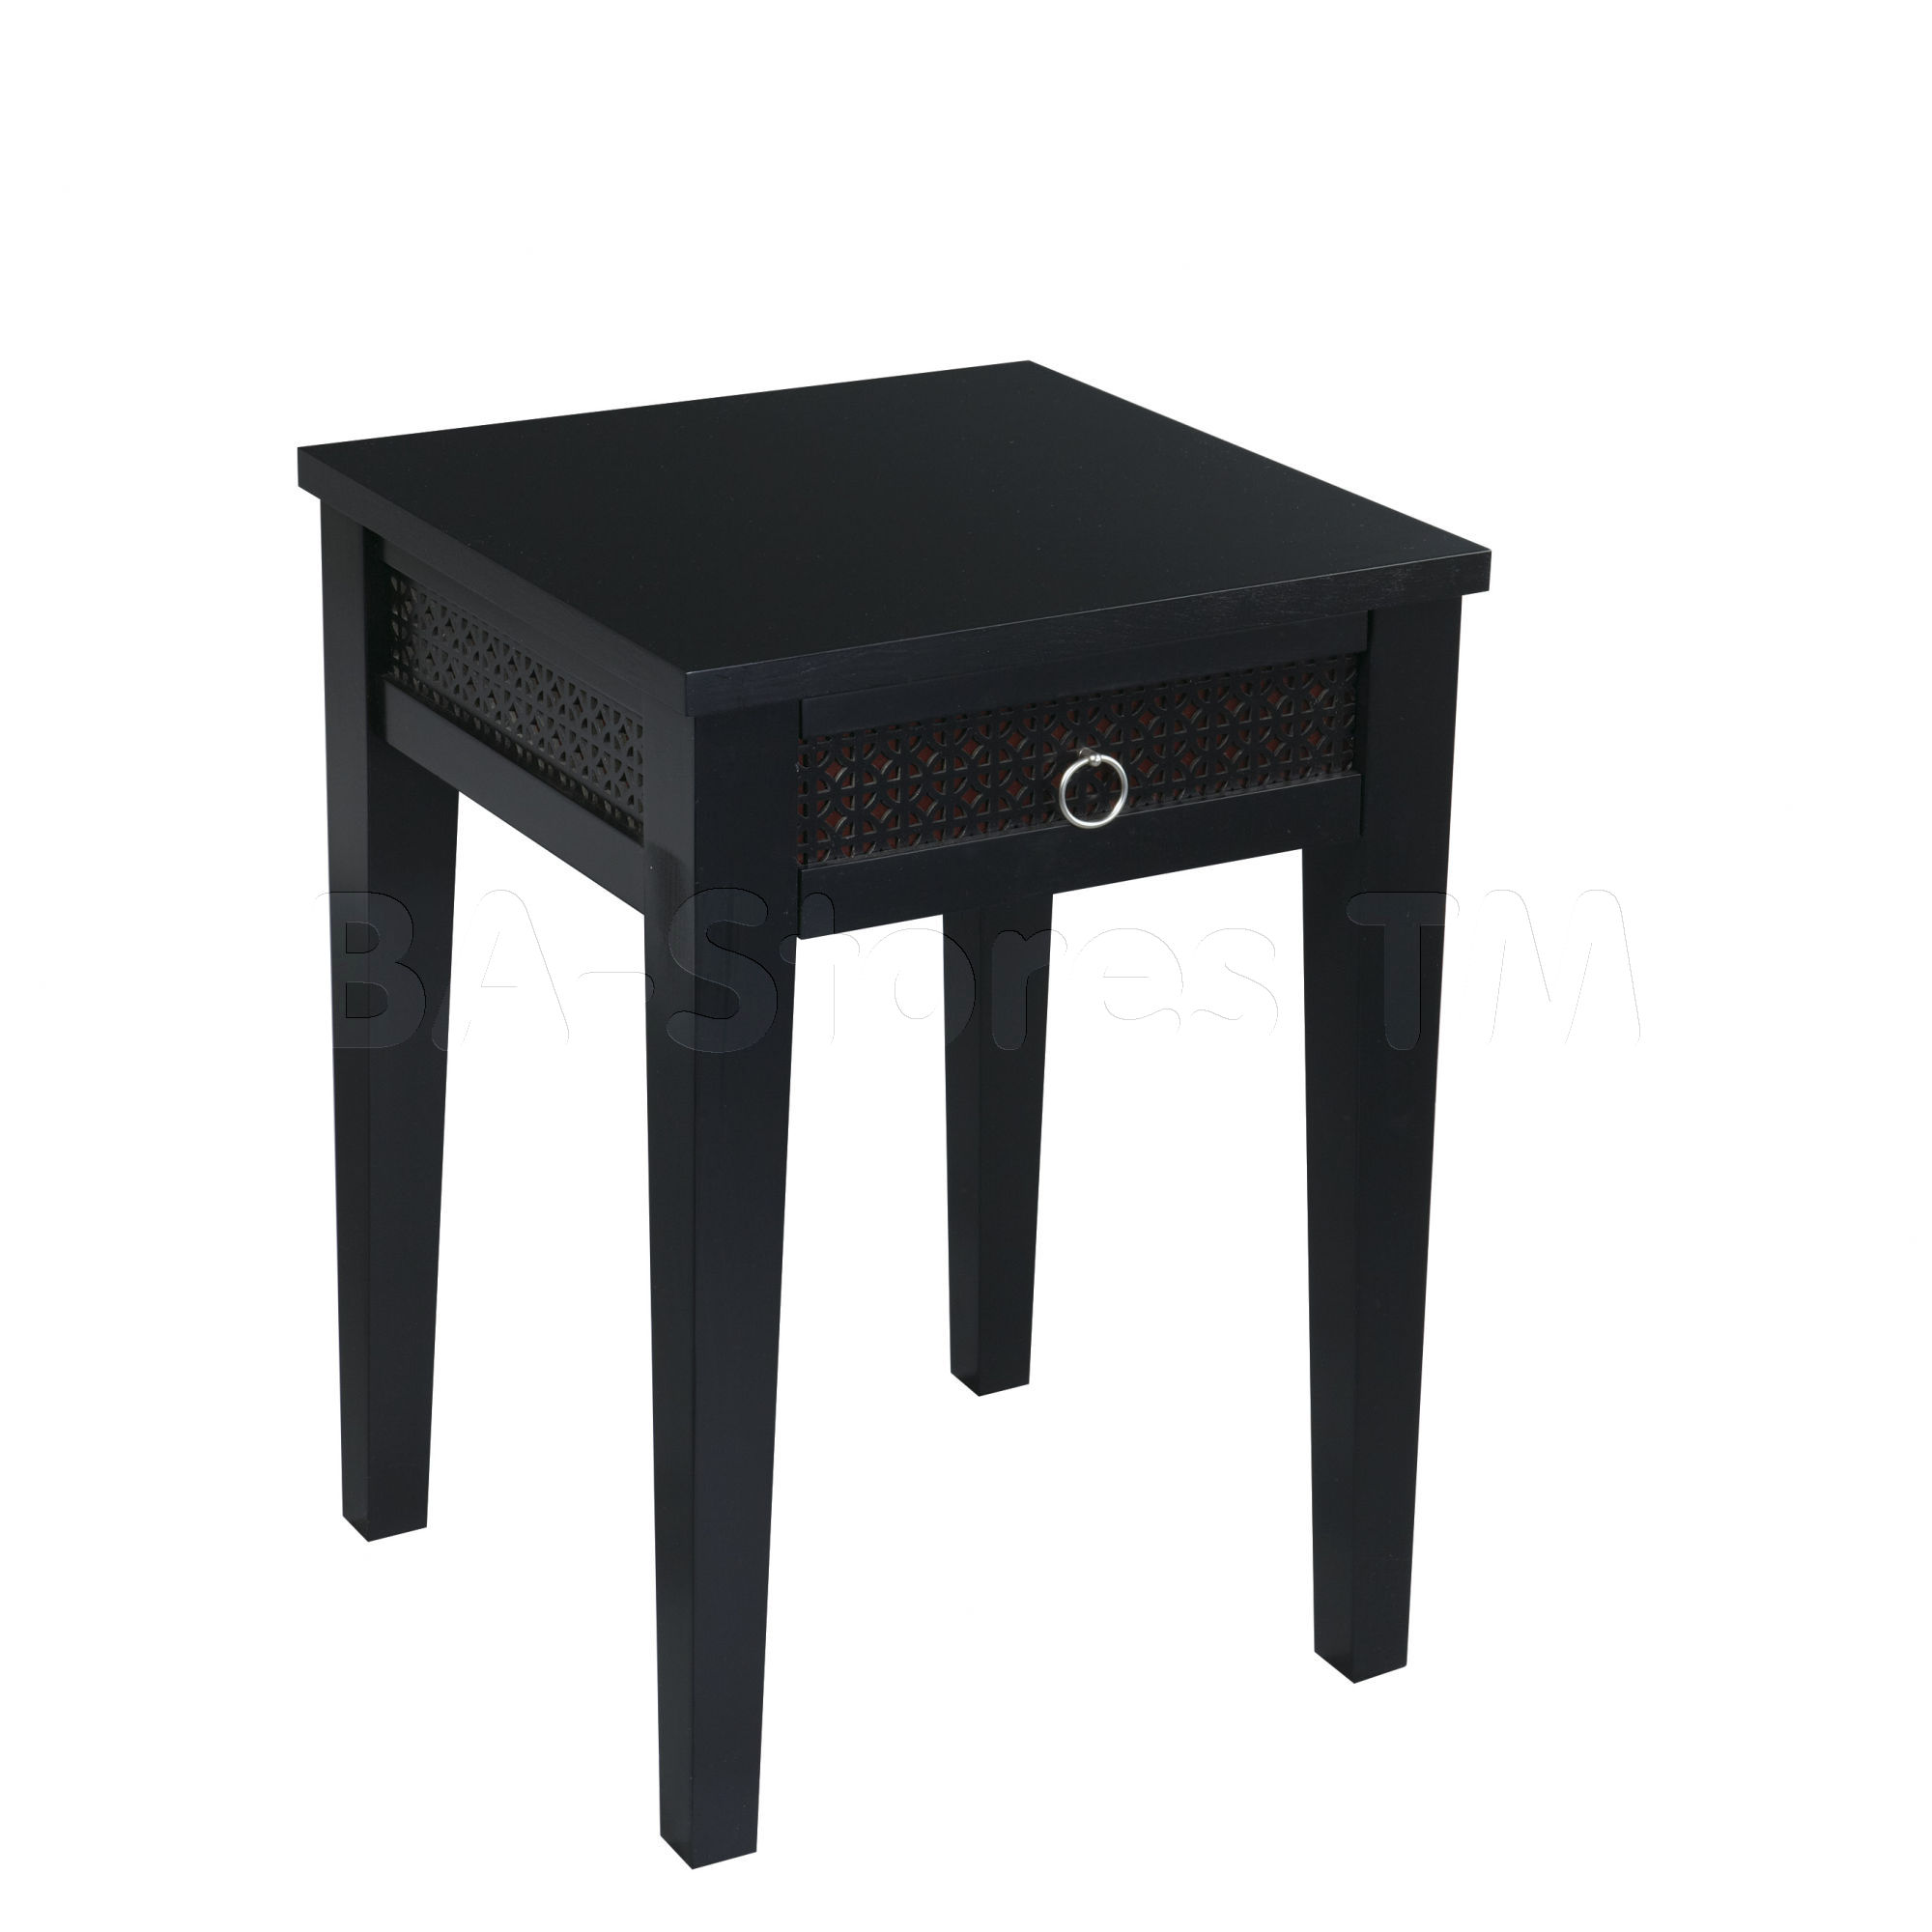 modern coffee table decor ideas the super fun black side round wooden curvy legs having furniture square with drawers four mini small tables chic design complete your decoration